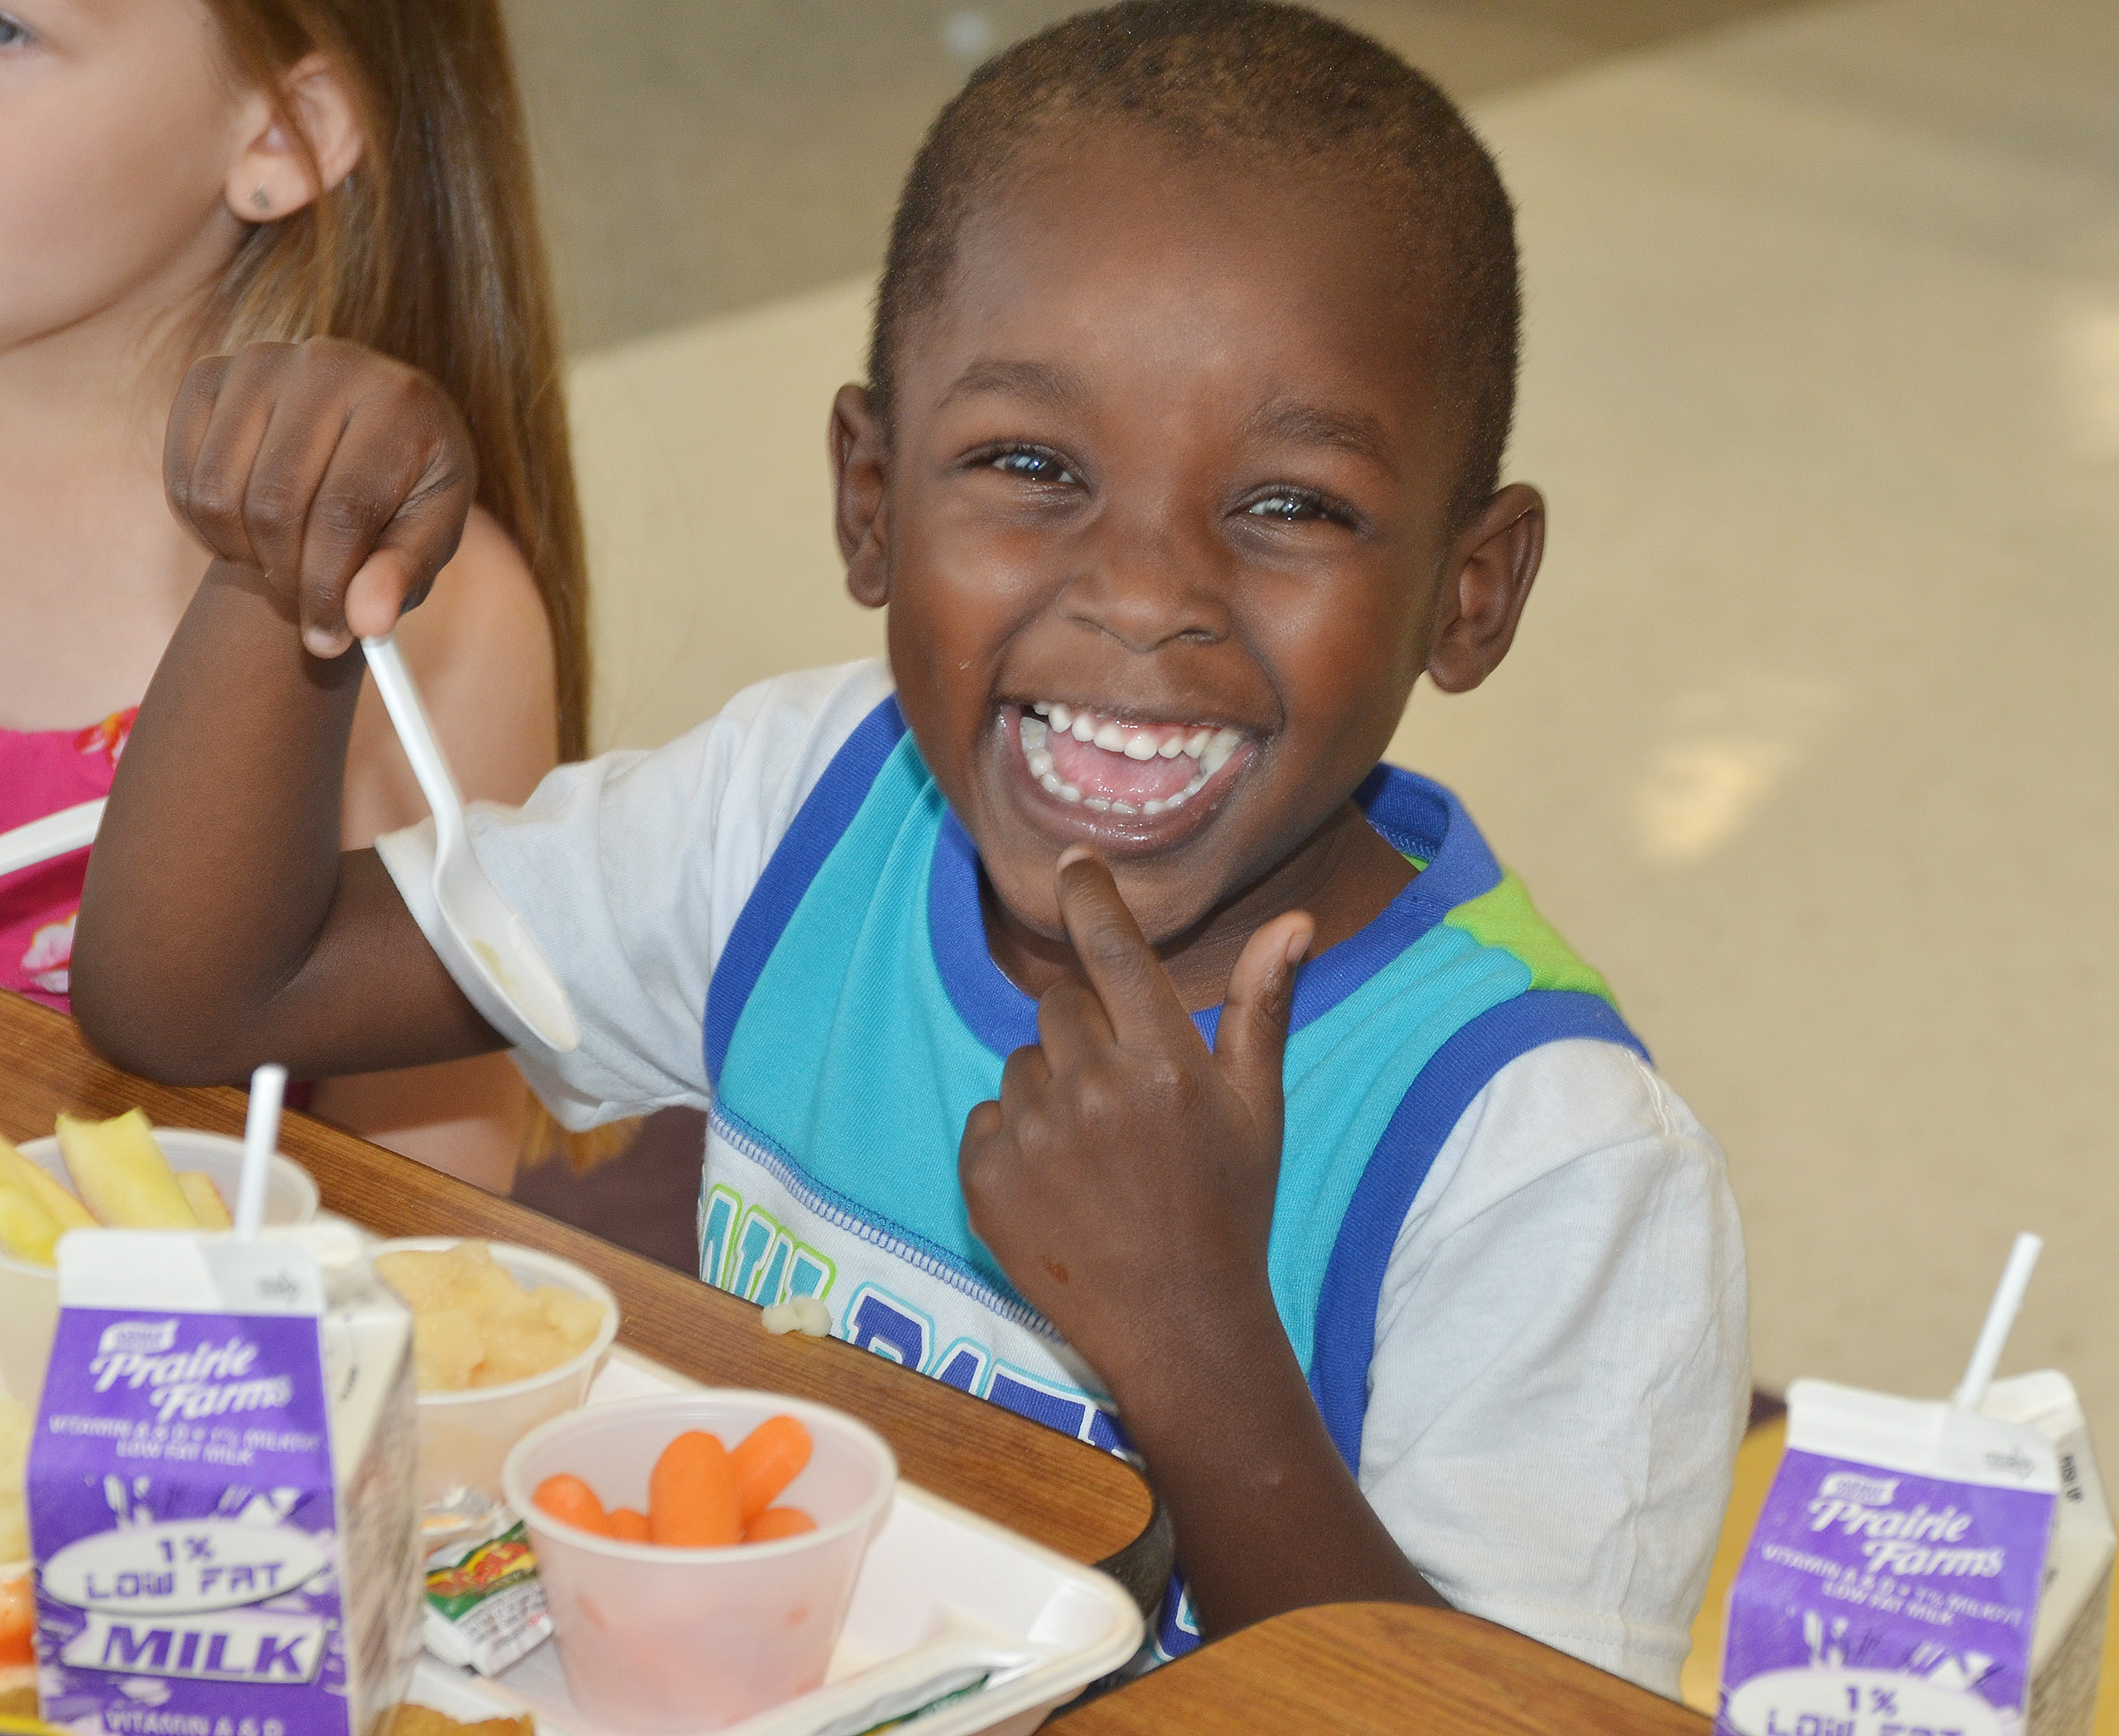 CES preschool student Xavien Smith smiles as he eats lunch.